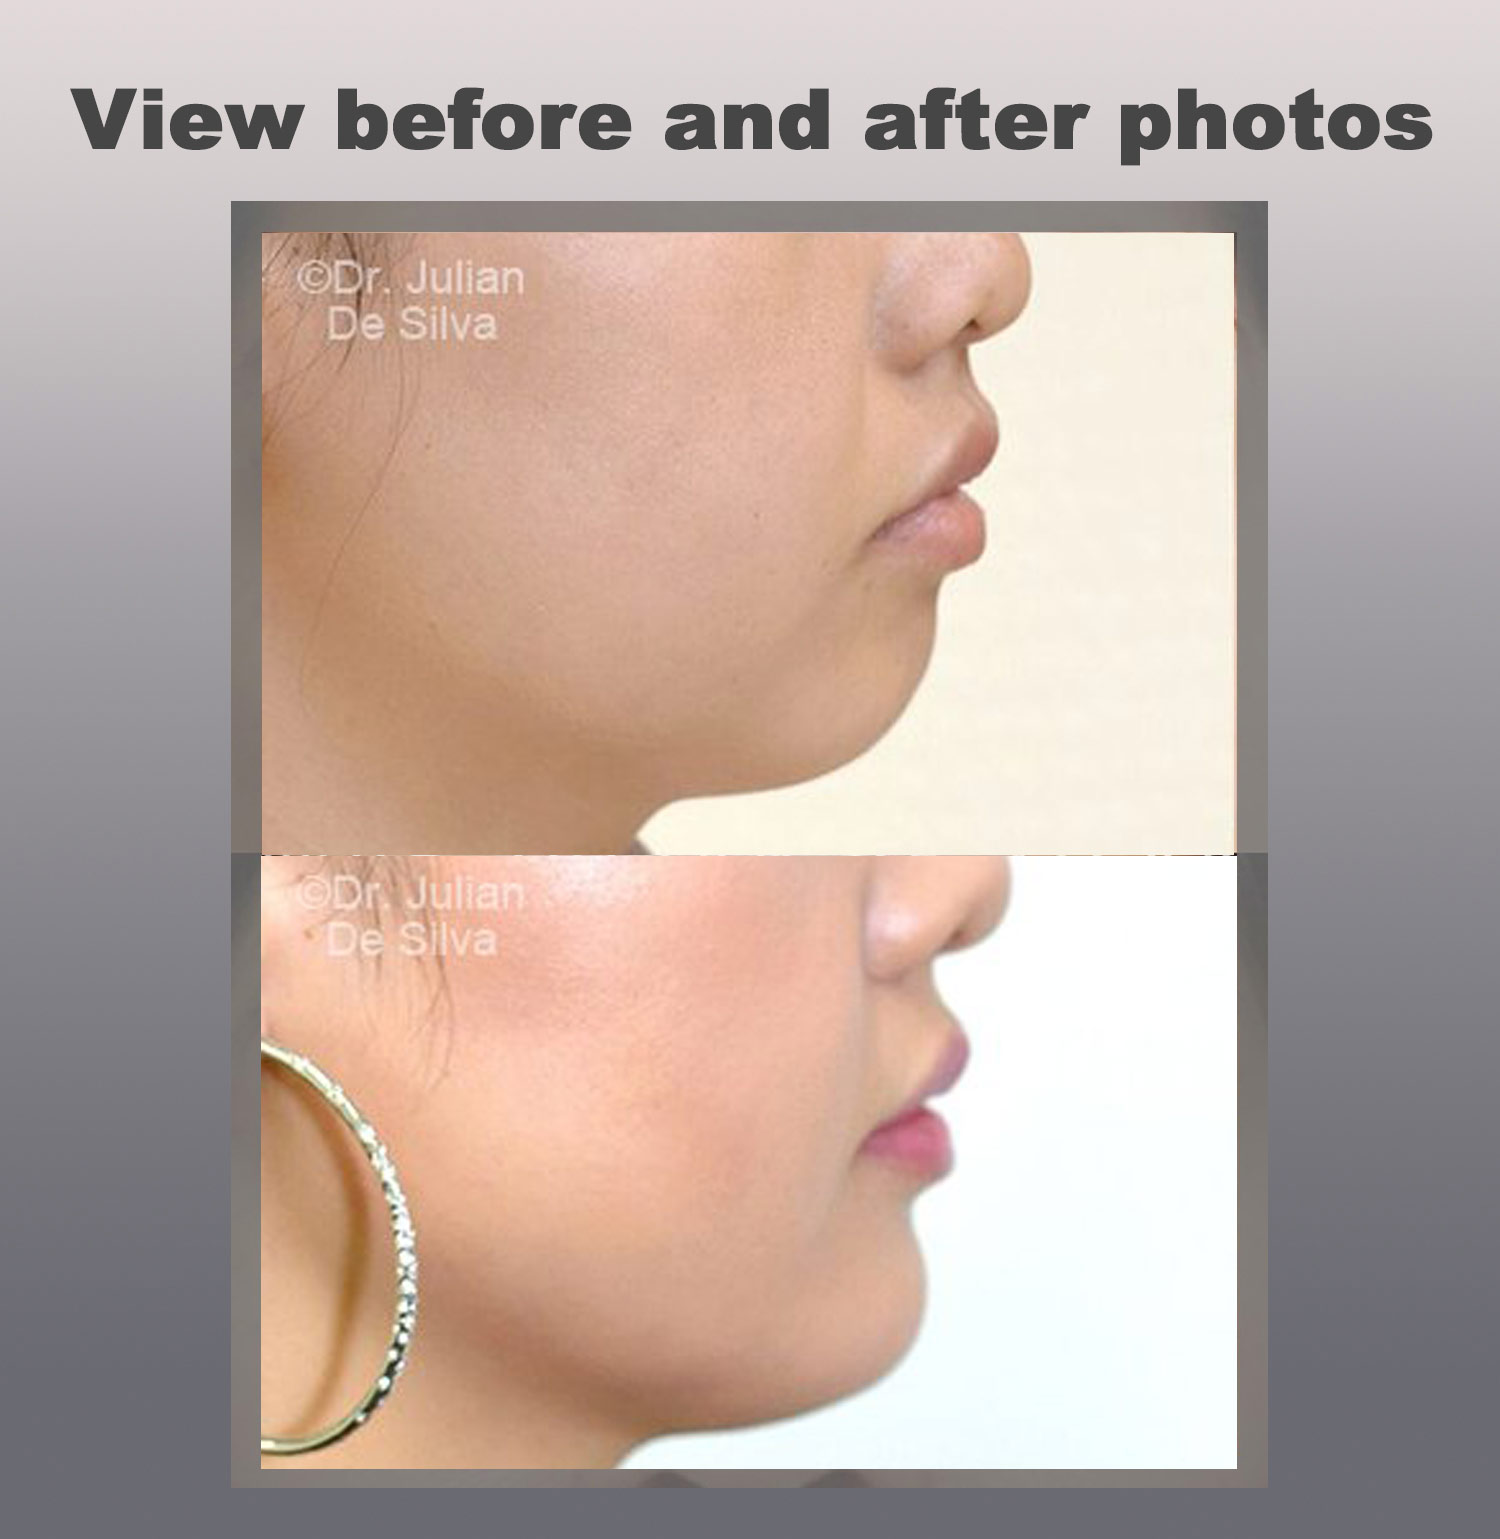 View Before and After Chin Implants photos